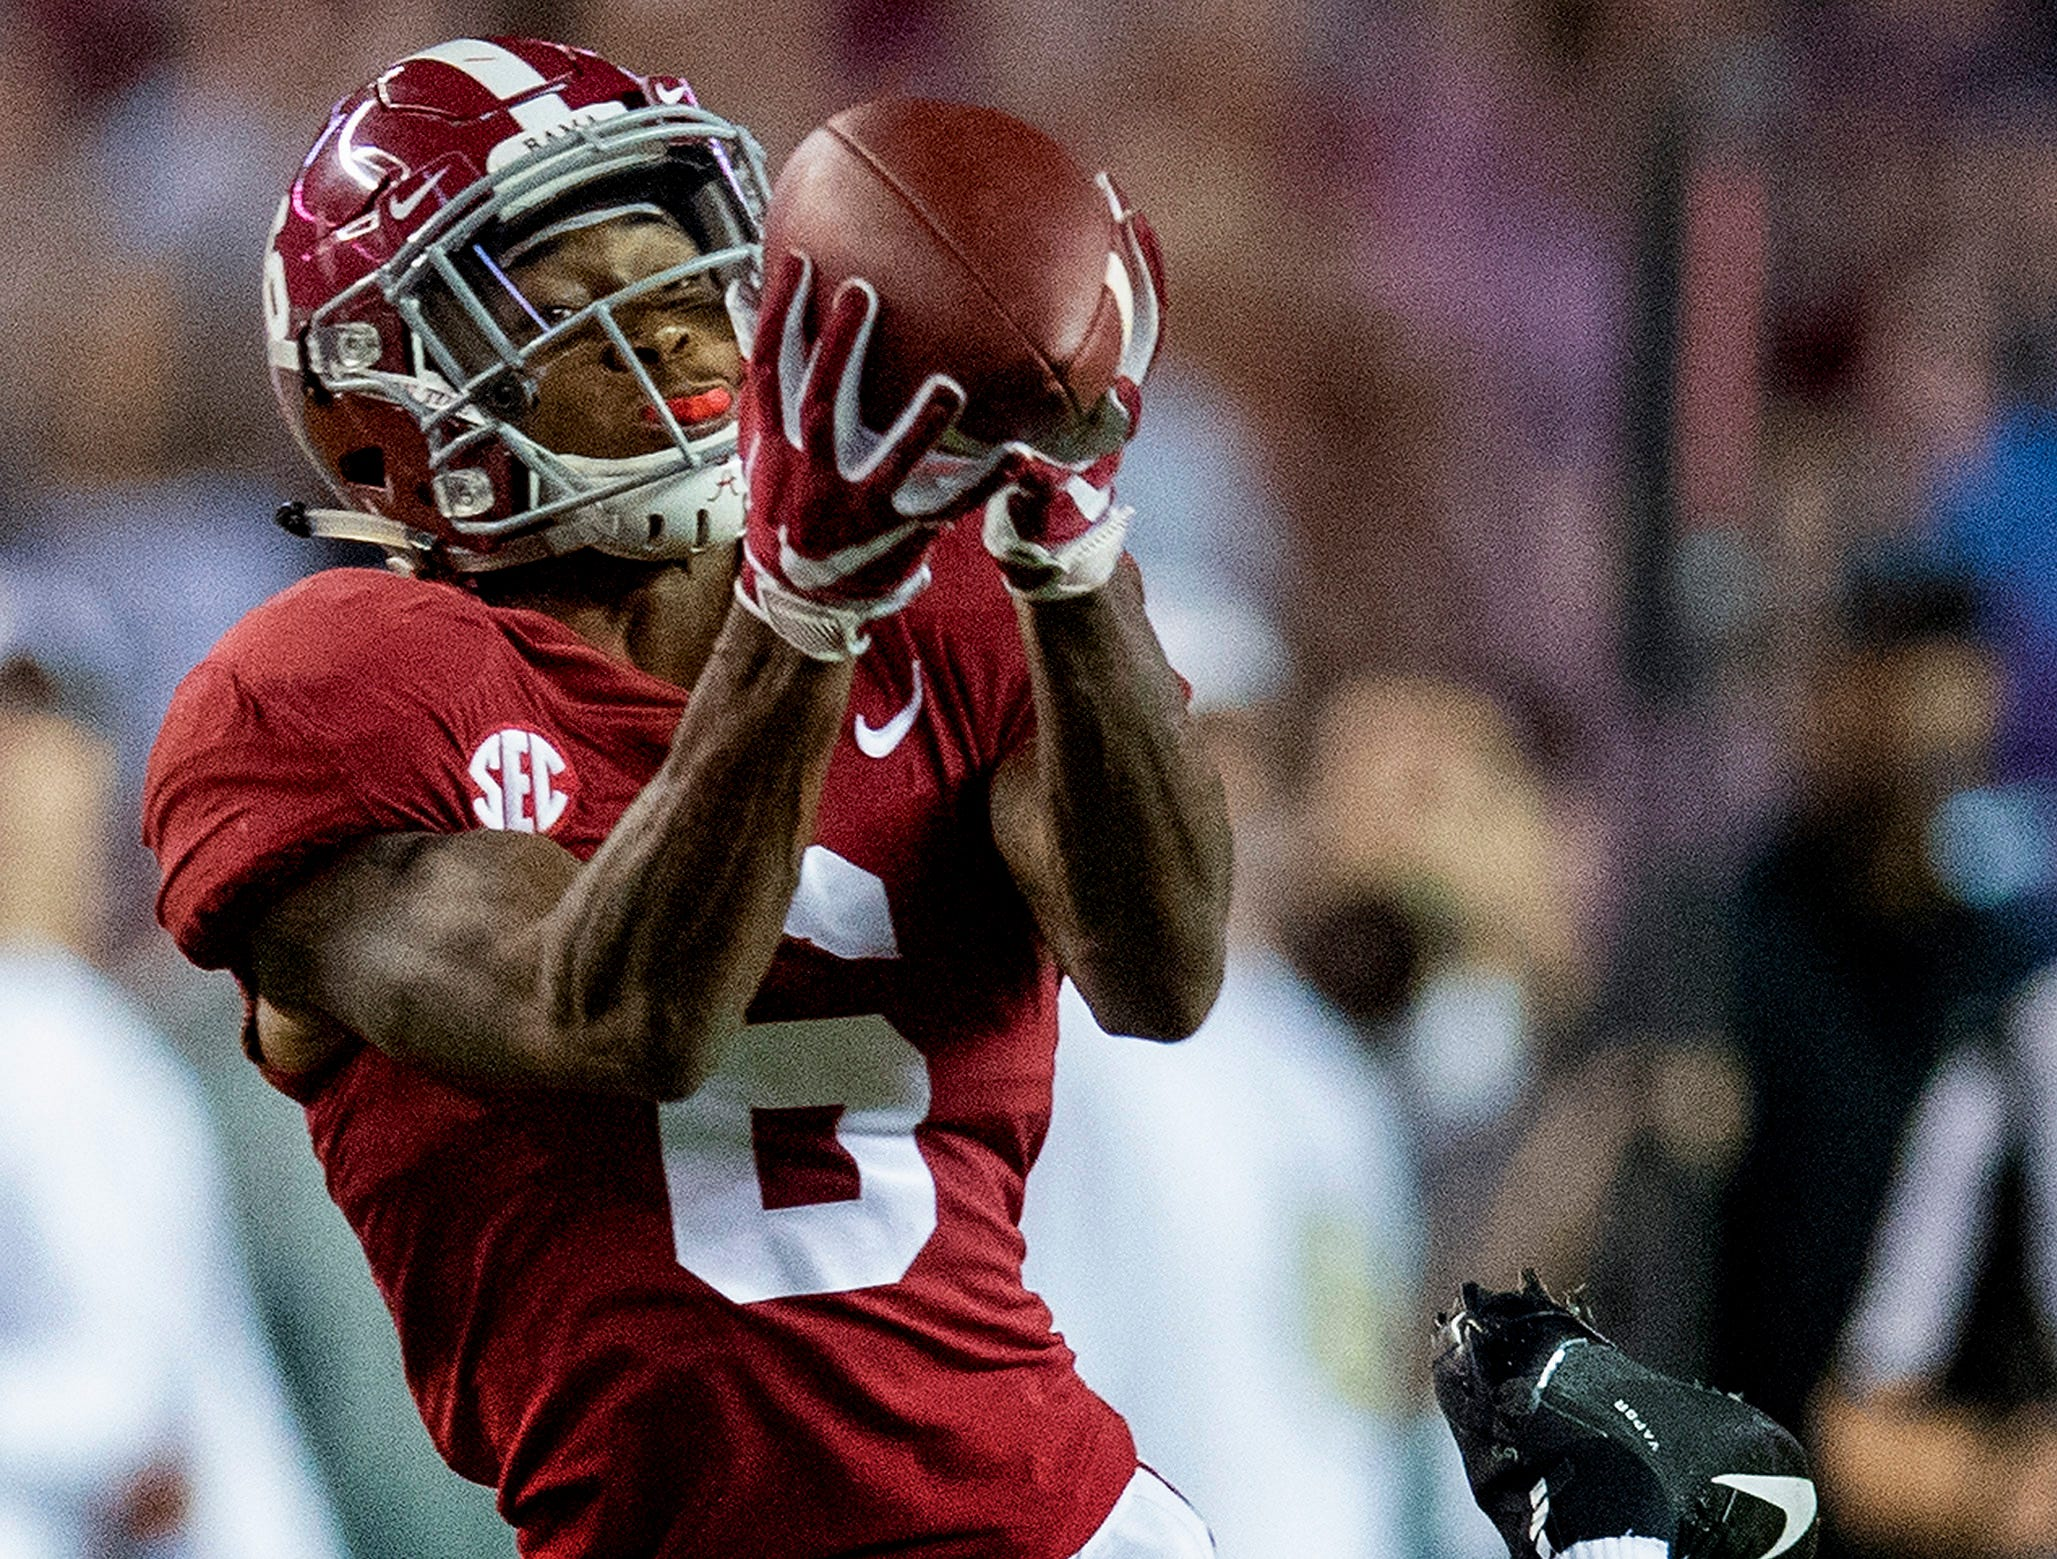 Alabama wide receiver DeVonta Smith (6) catches a p[ass against Missouri in first half action at Bryant Denny Stadium in Tuscaloosa, Ala., on Saturday October 13, 2018.